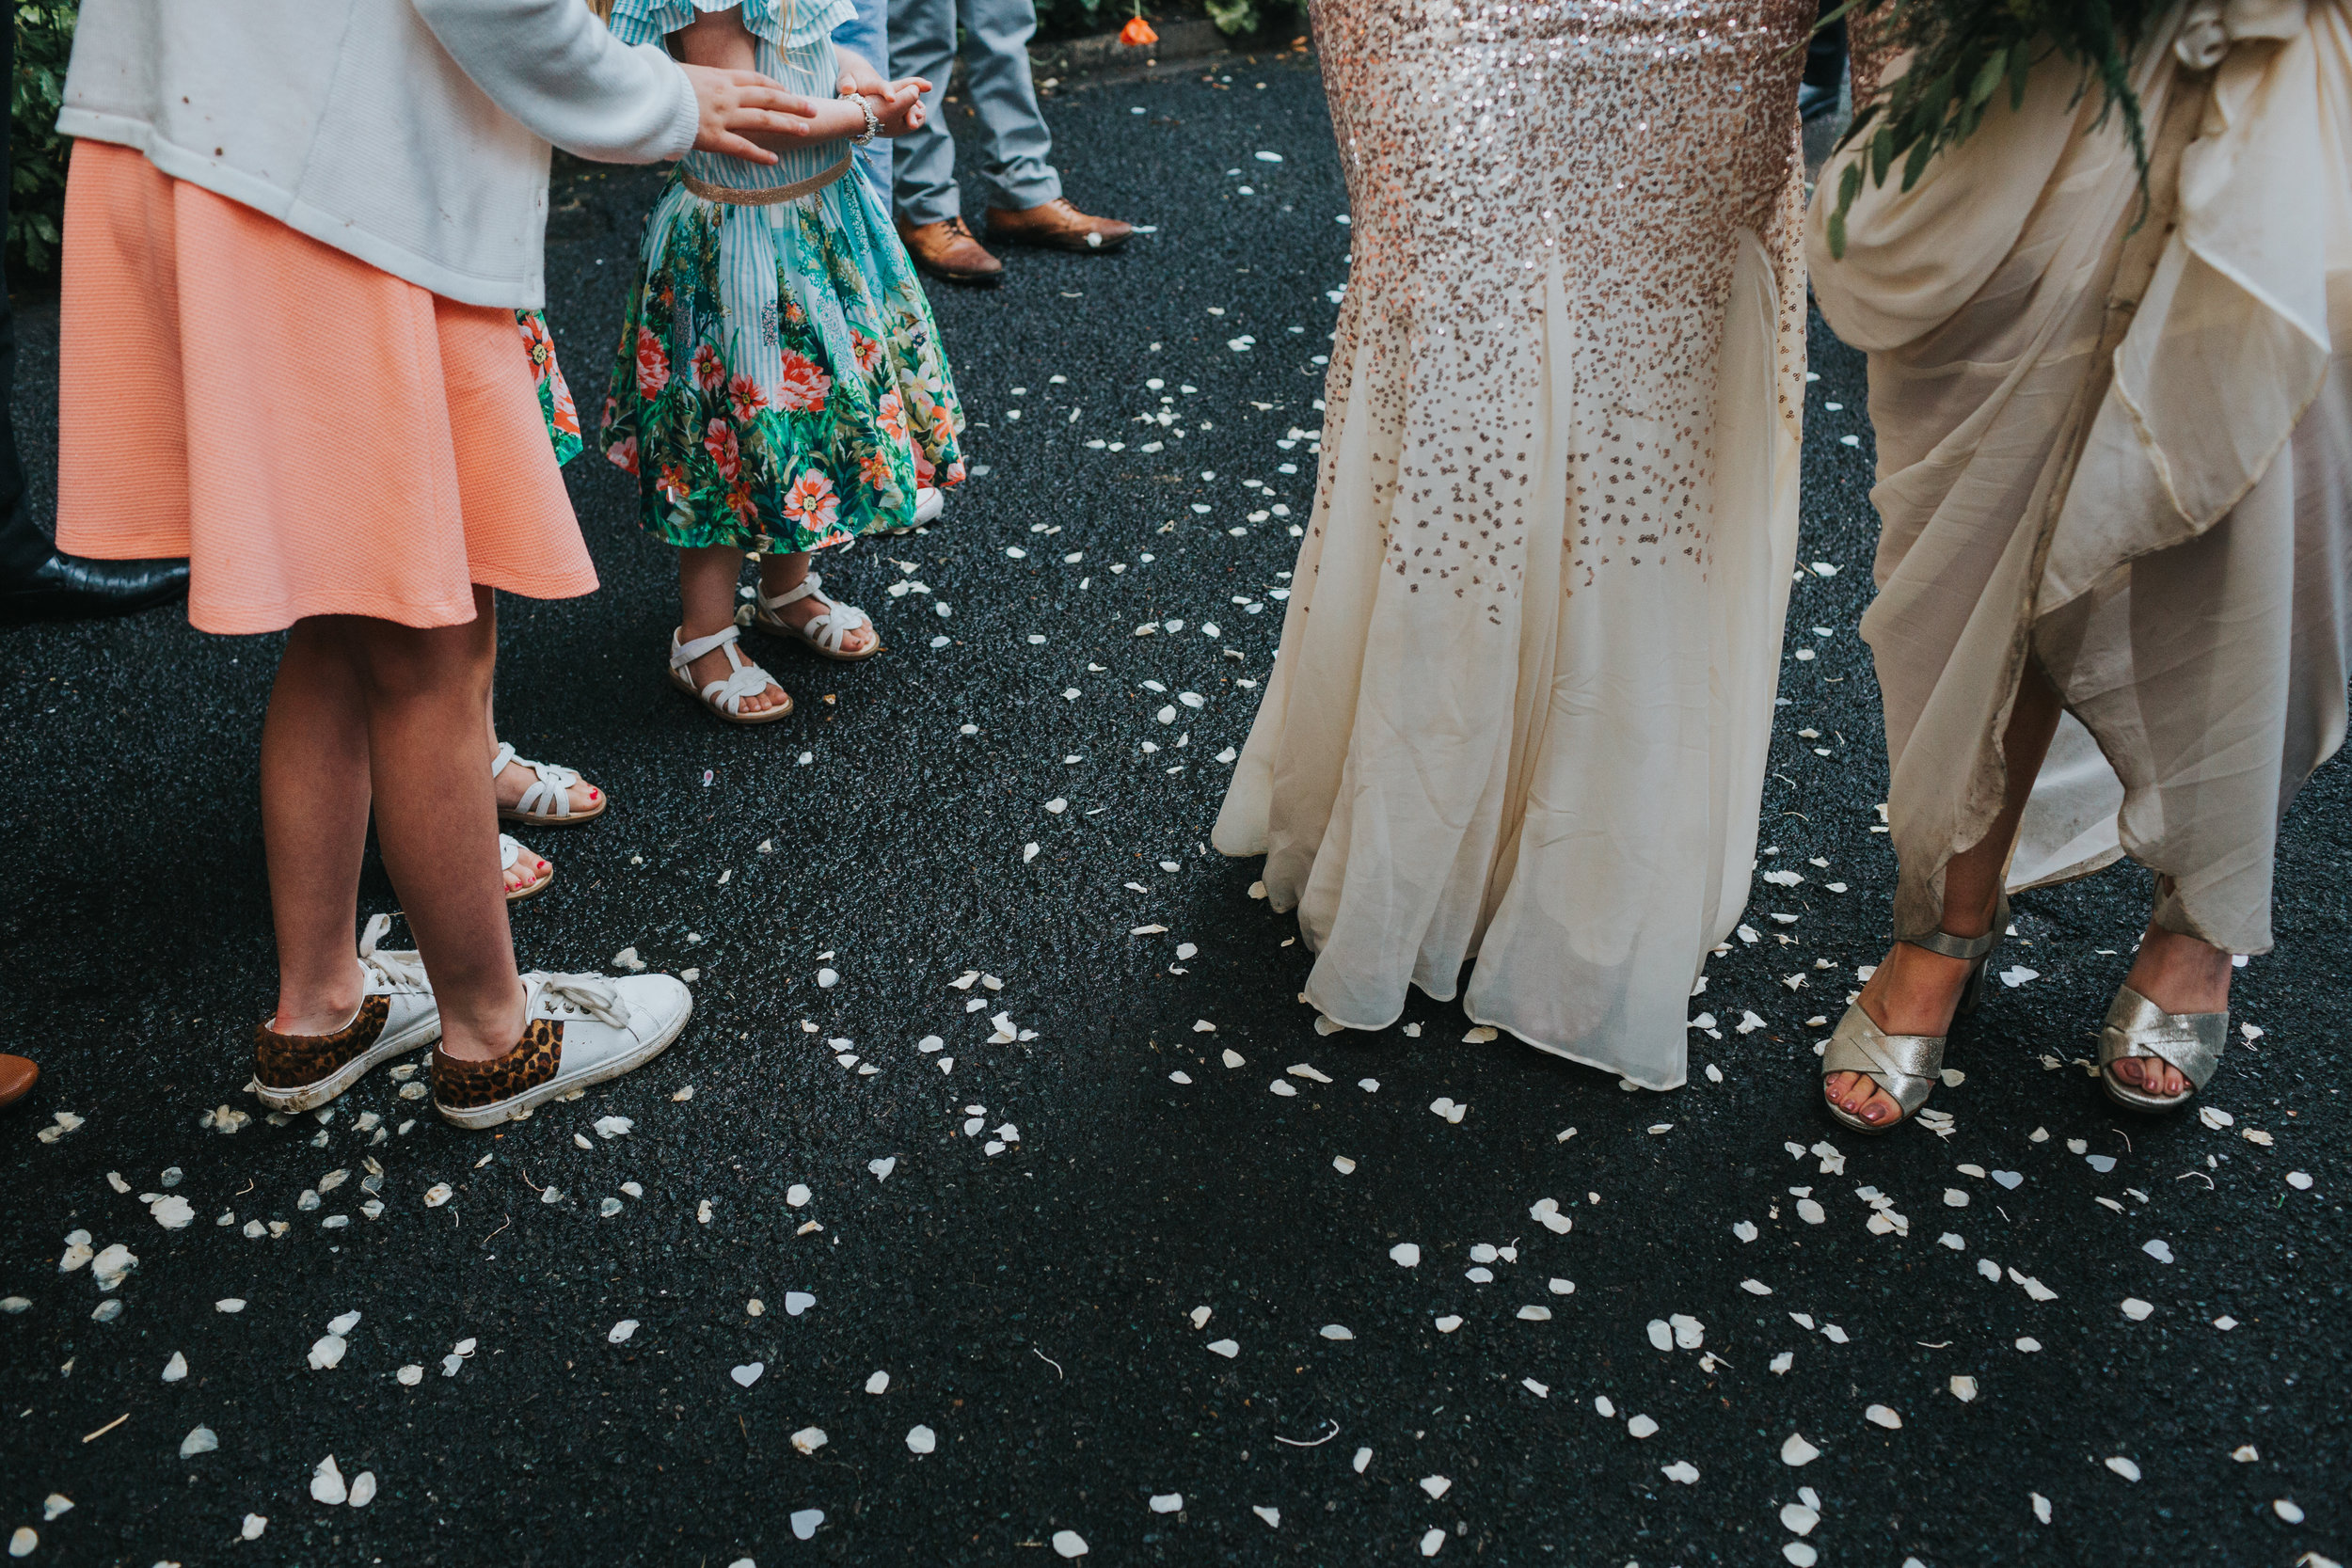 Confetti covers the floor next to wedding guests pretty shoes and dresses.